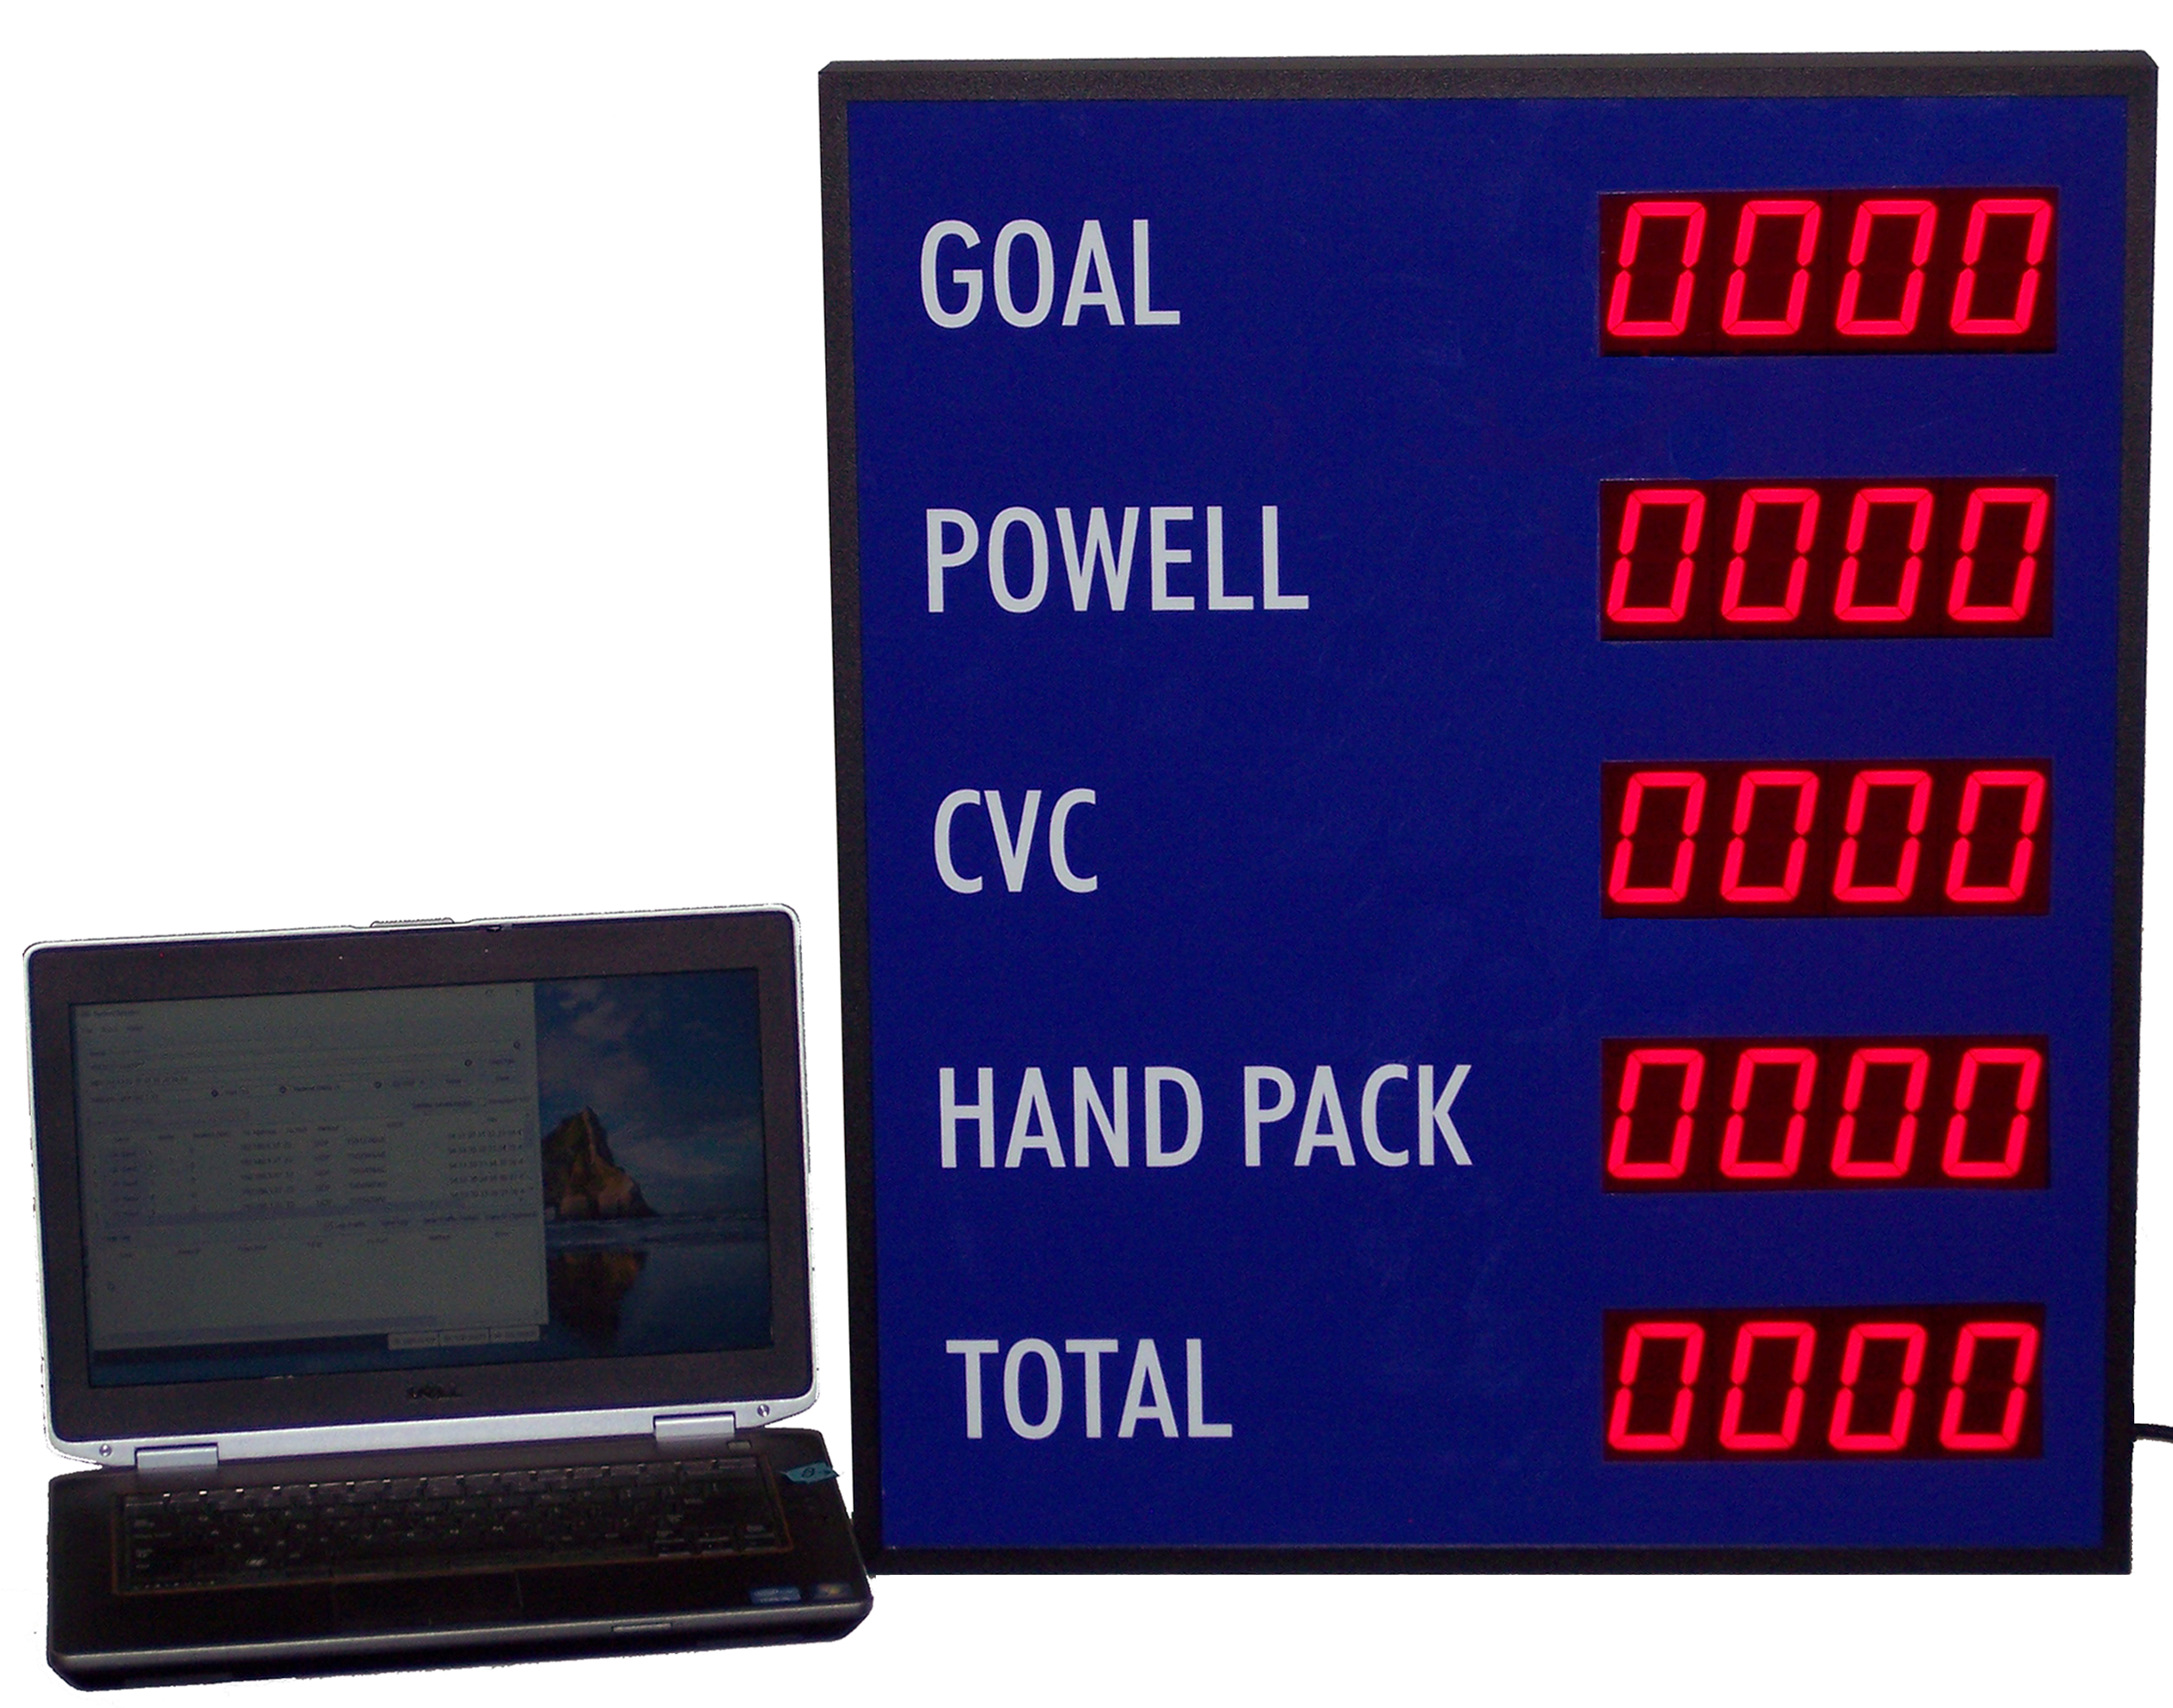 Wifi addressable Static number display DC-25N-Static-Wifi, 5 in one enclosure